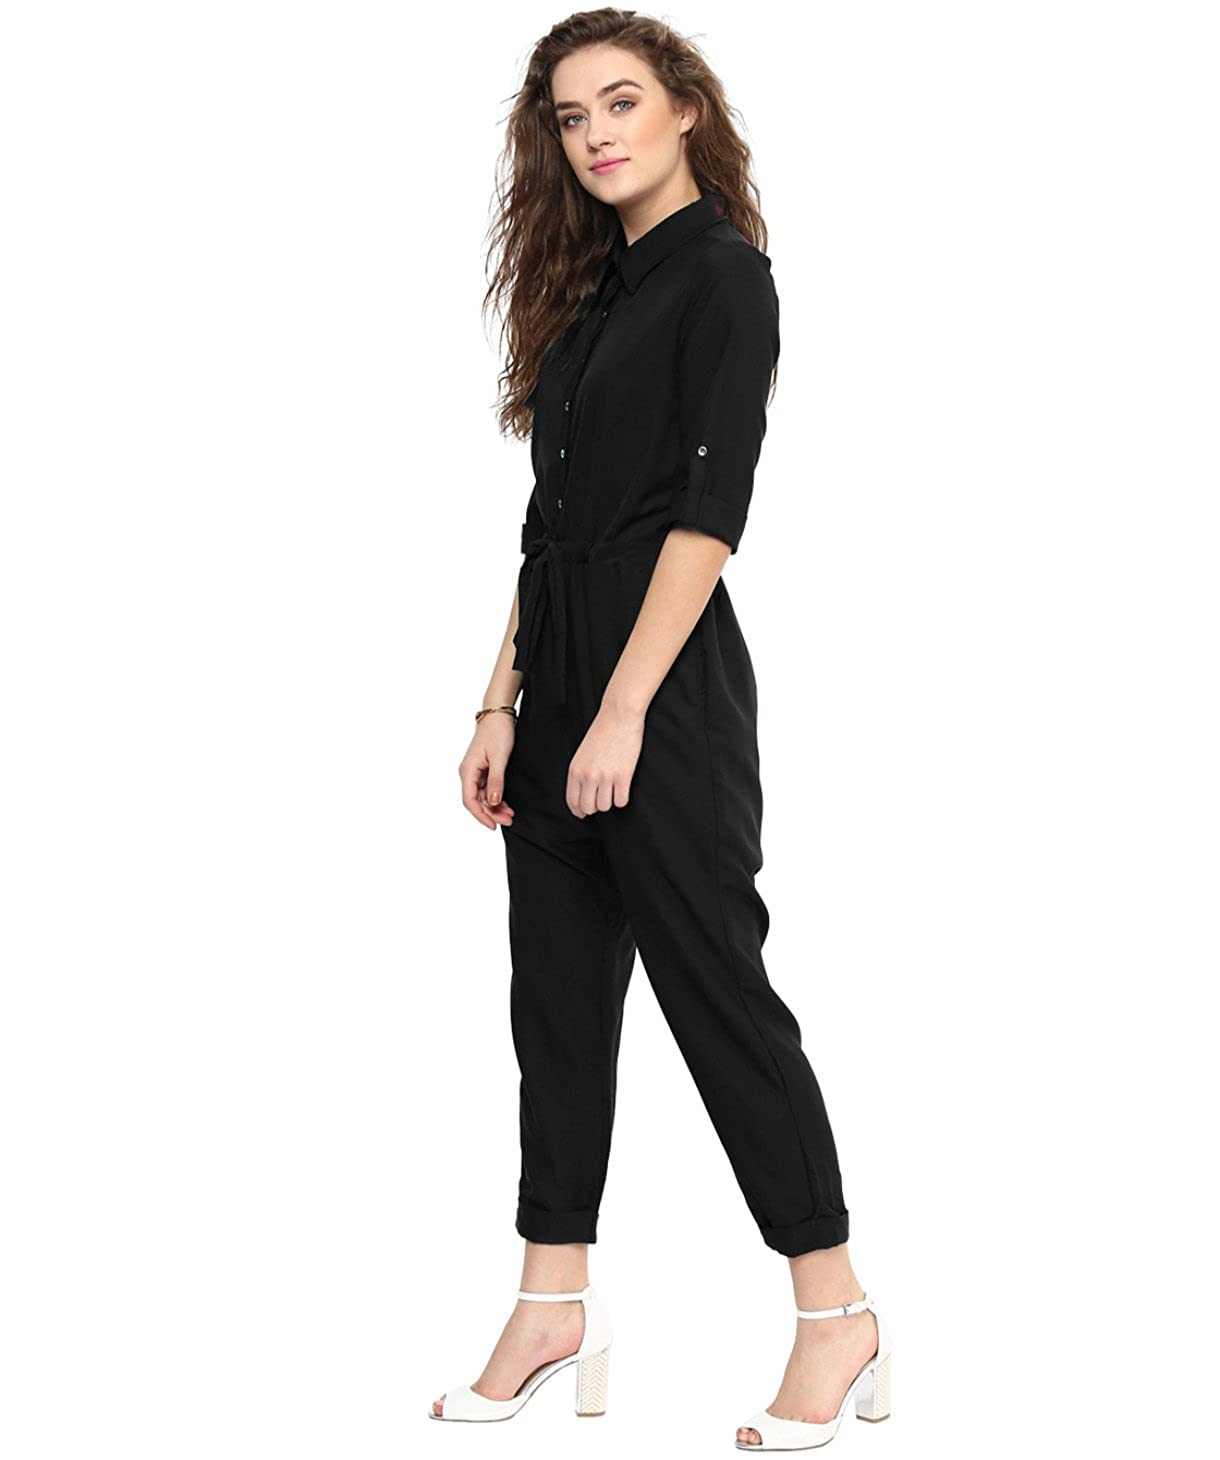 e886bf21b682 Uptownie Lite Women s Crepe Roll Up Jumpsuit  Amazon.in  Clothing    Accessories